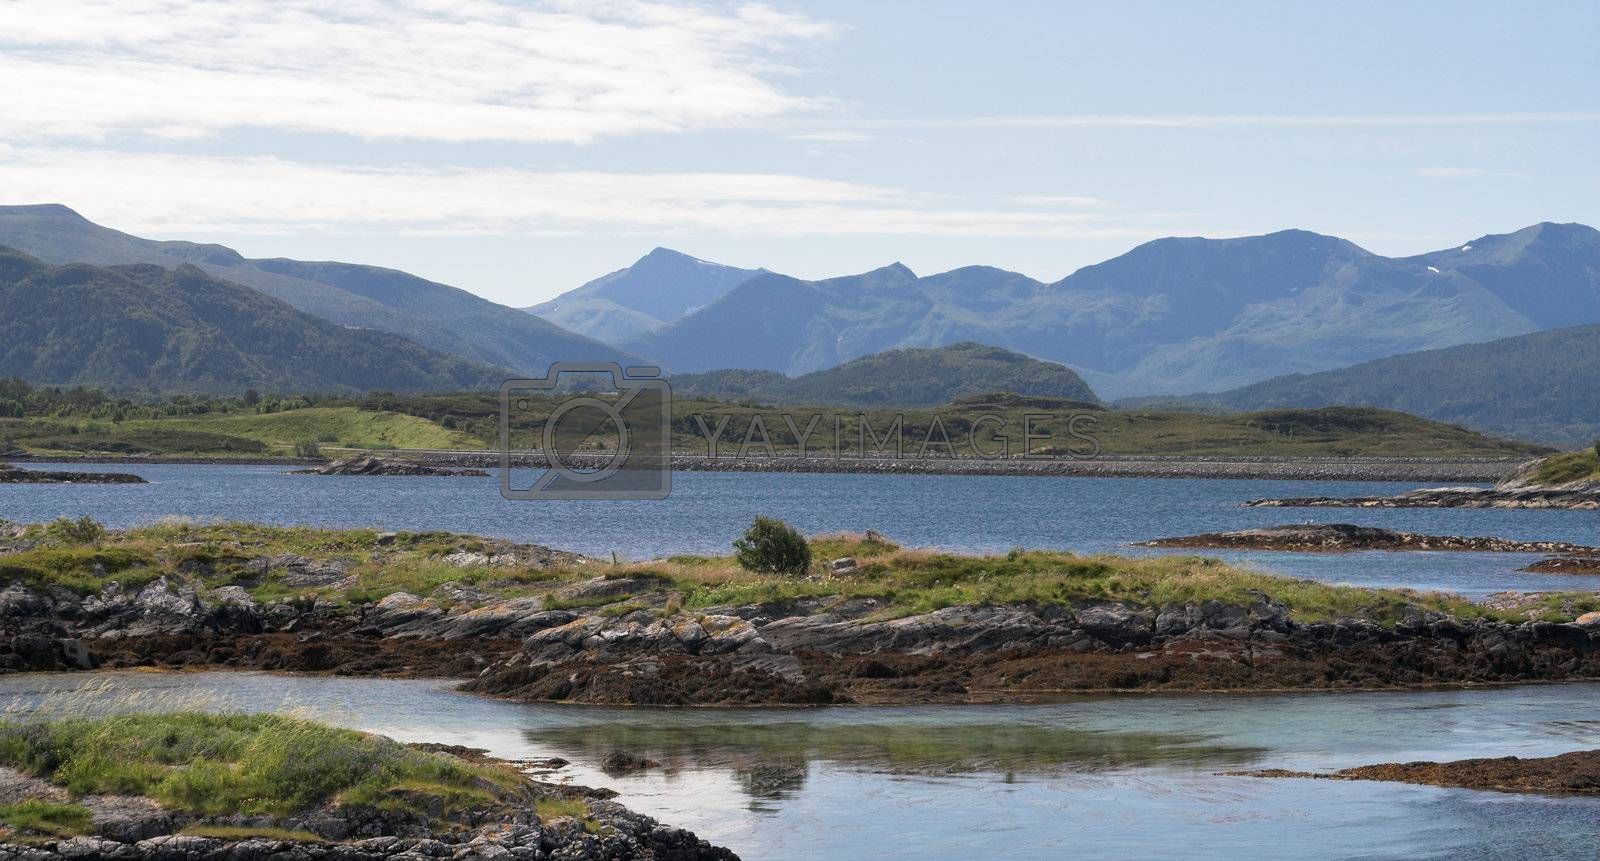 Panoramic view at small islands and mountains; Norway, Averoy, Atlantic road.